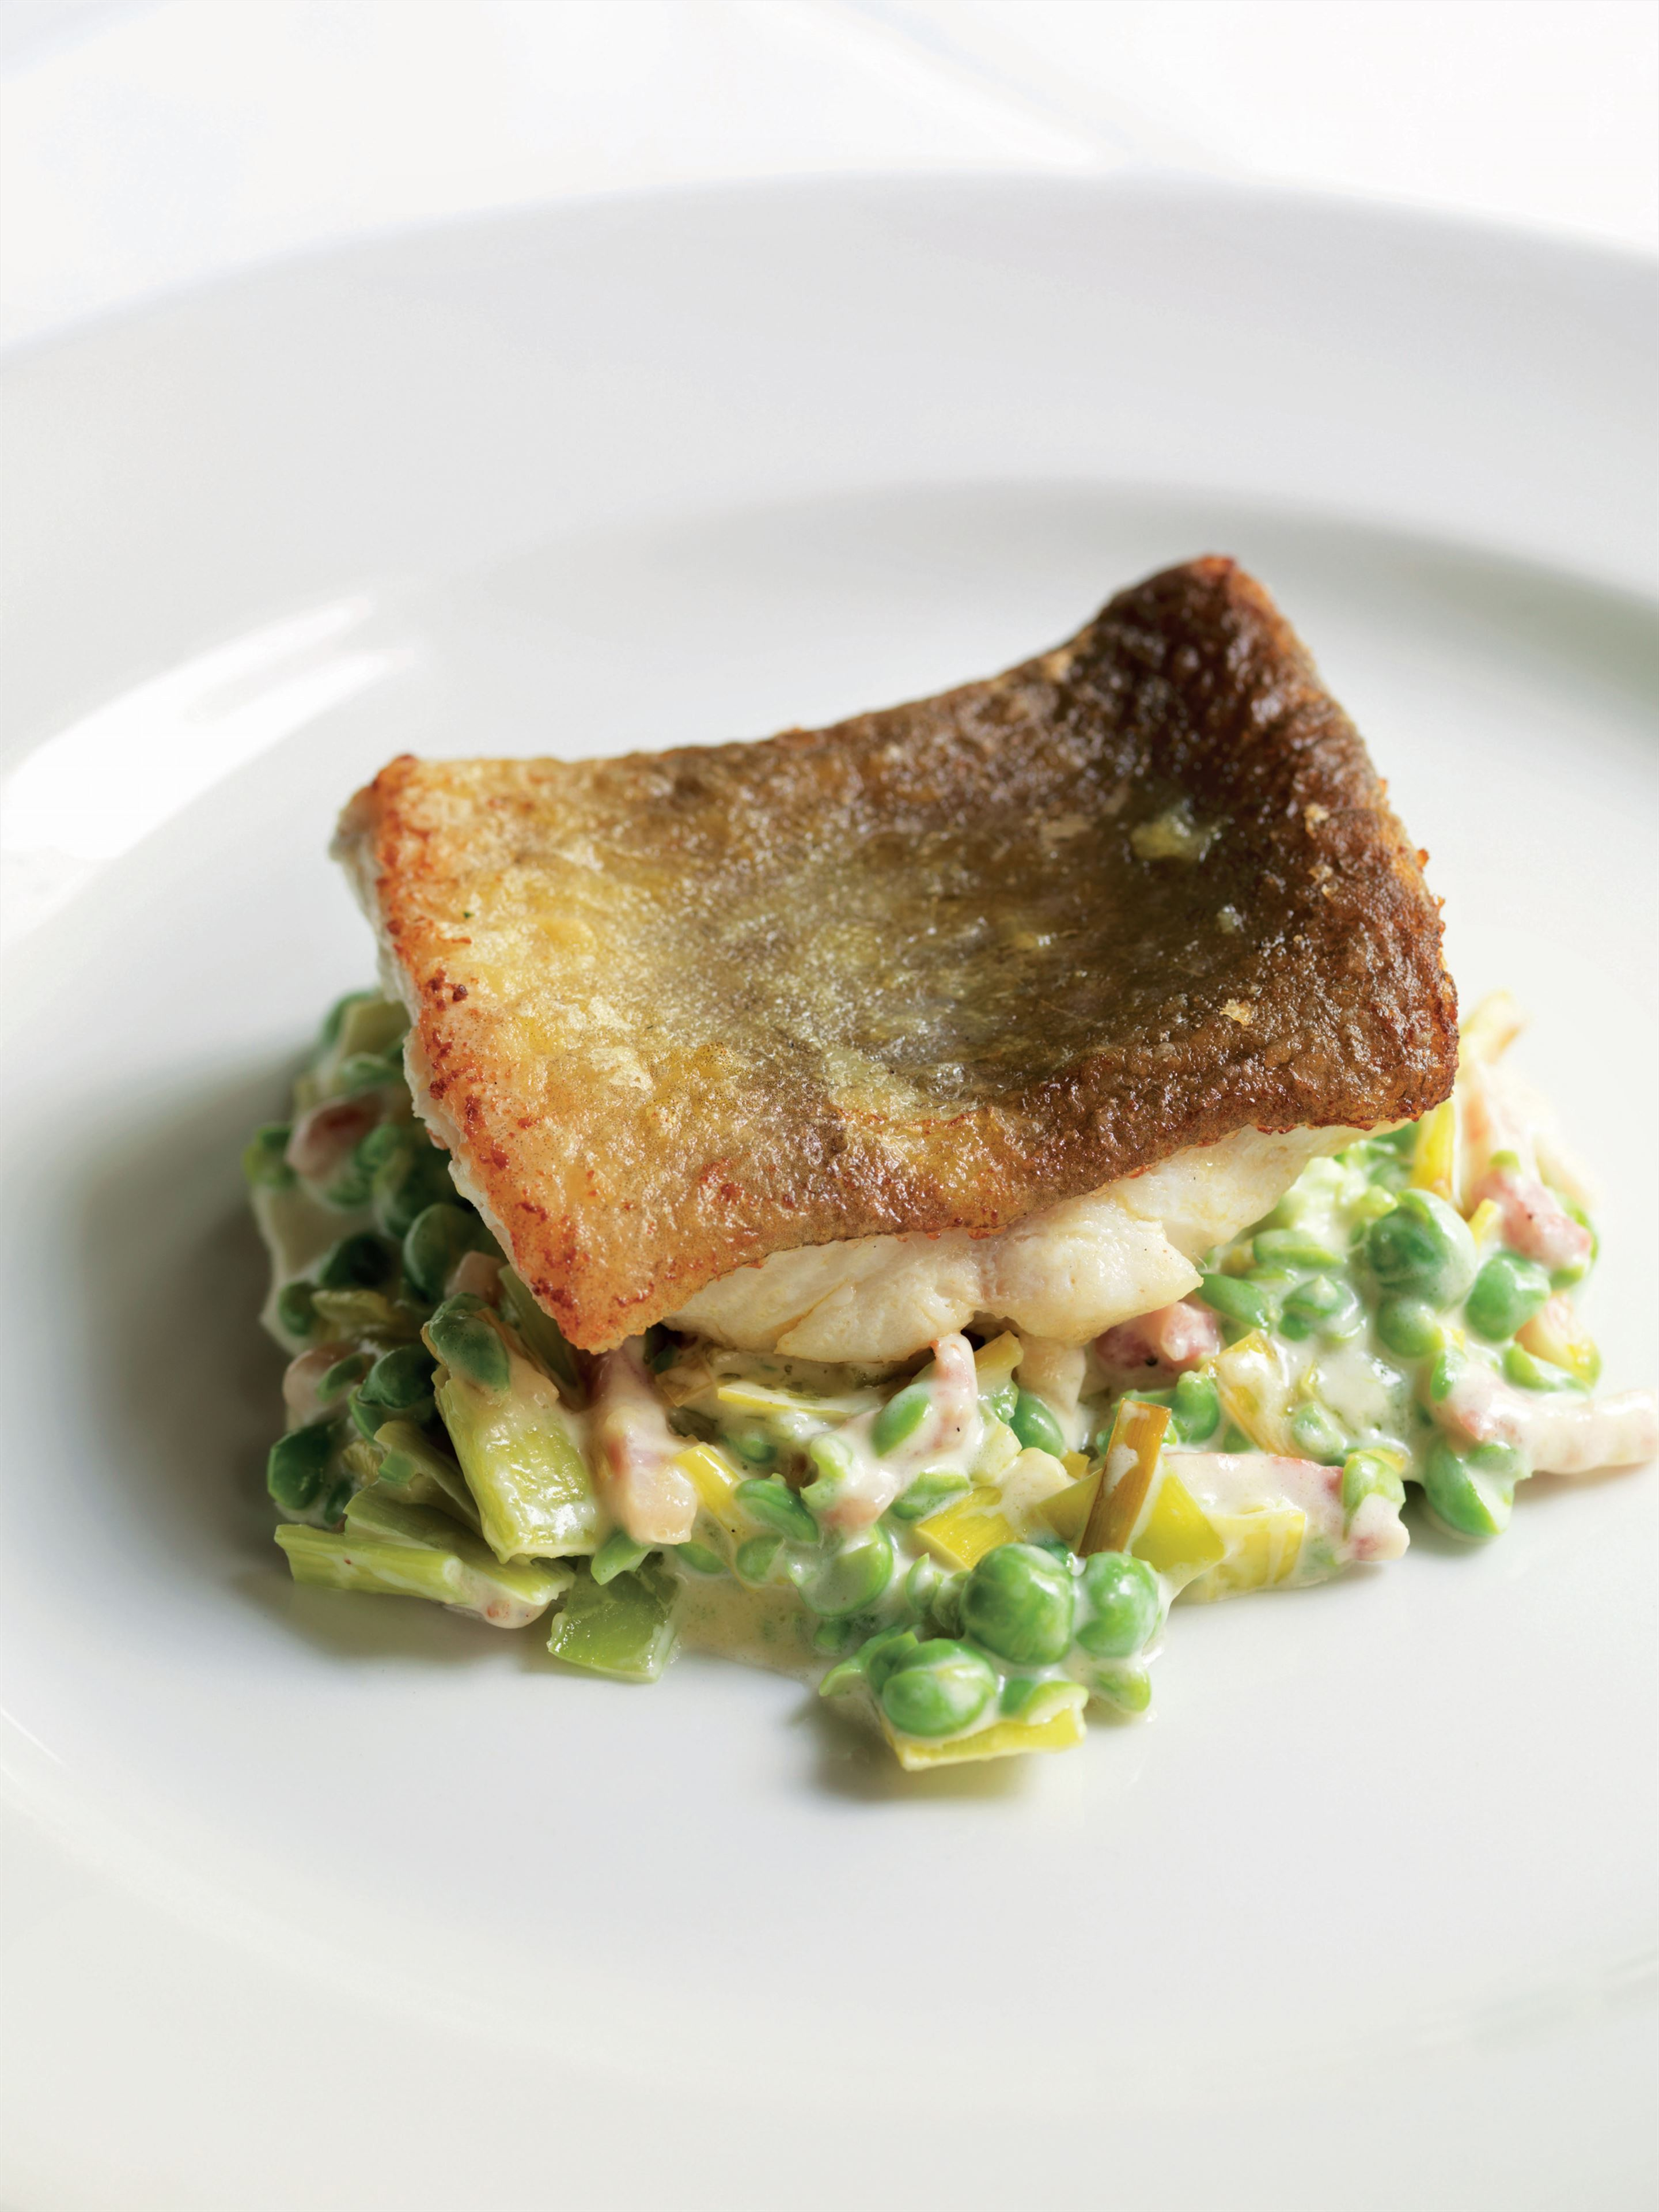 Ling with creamed peas, leeks and bacon